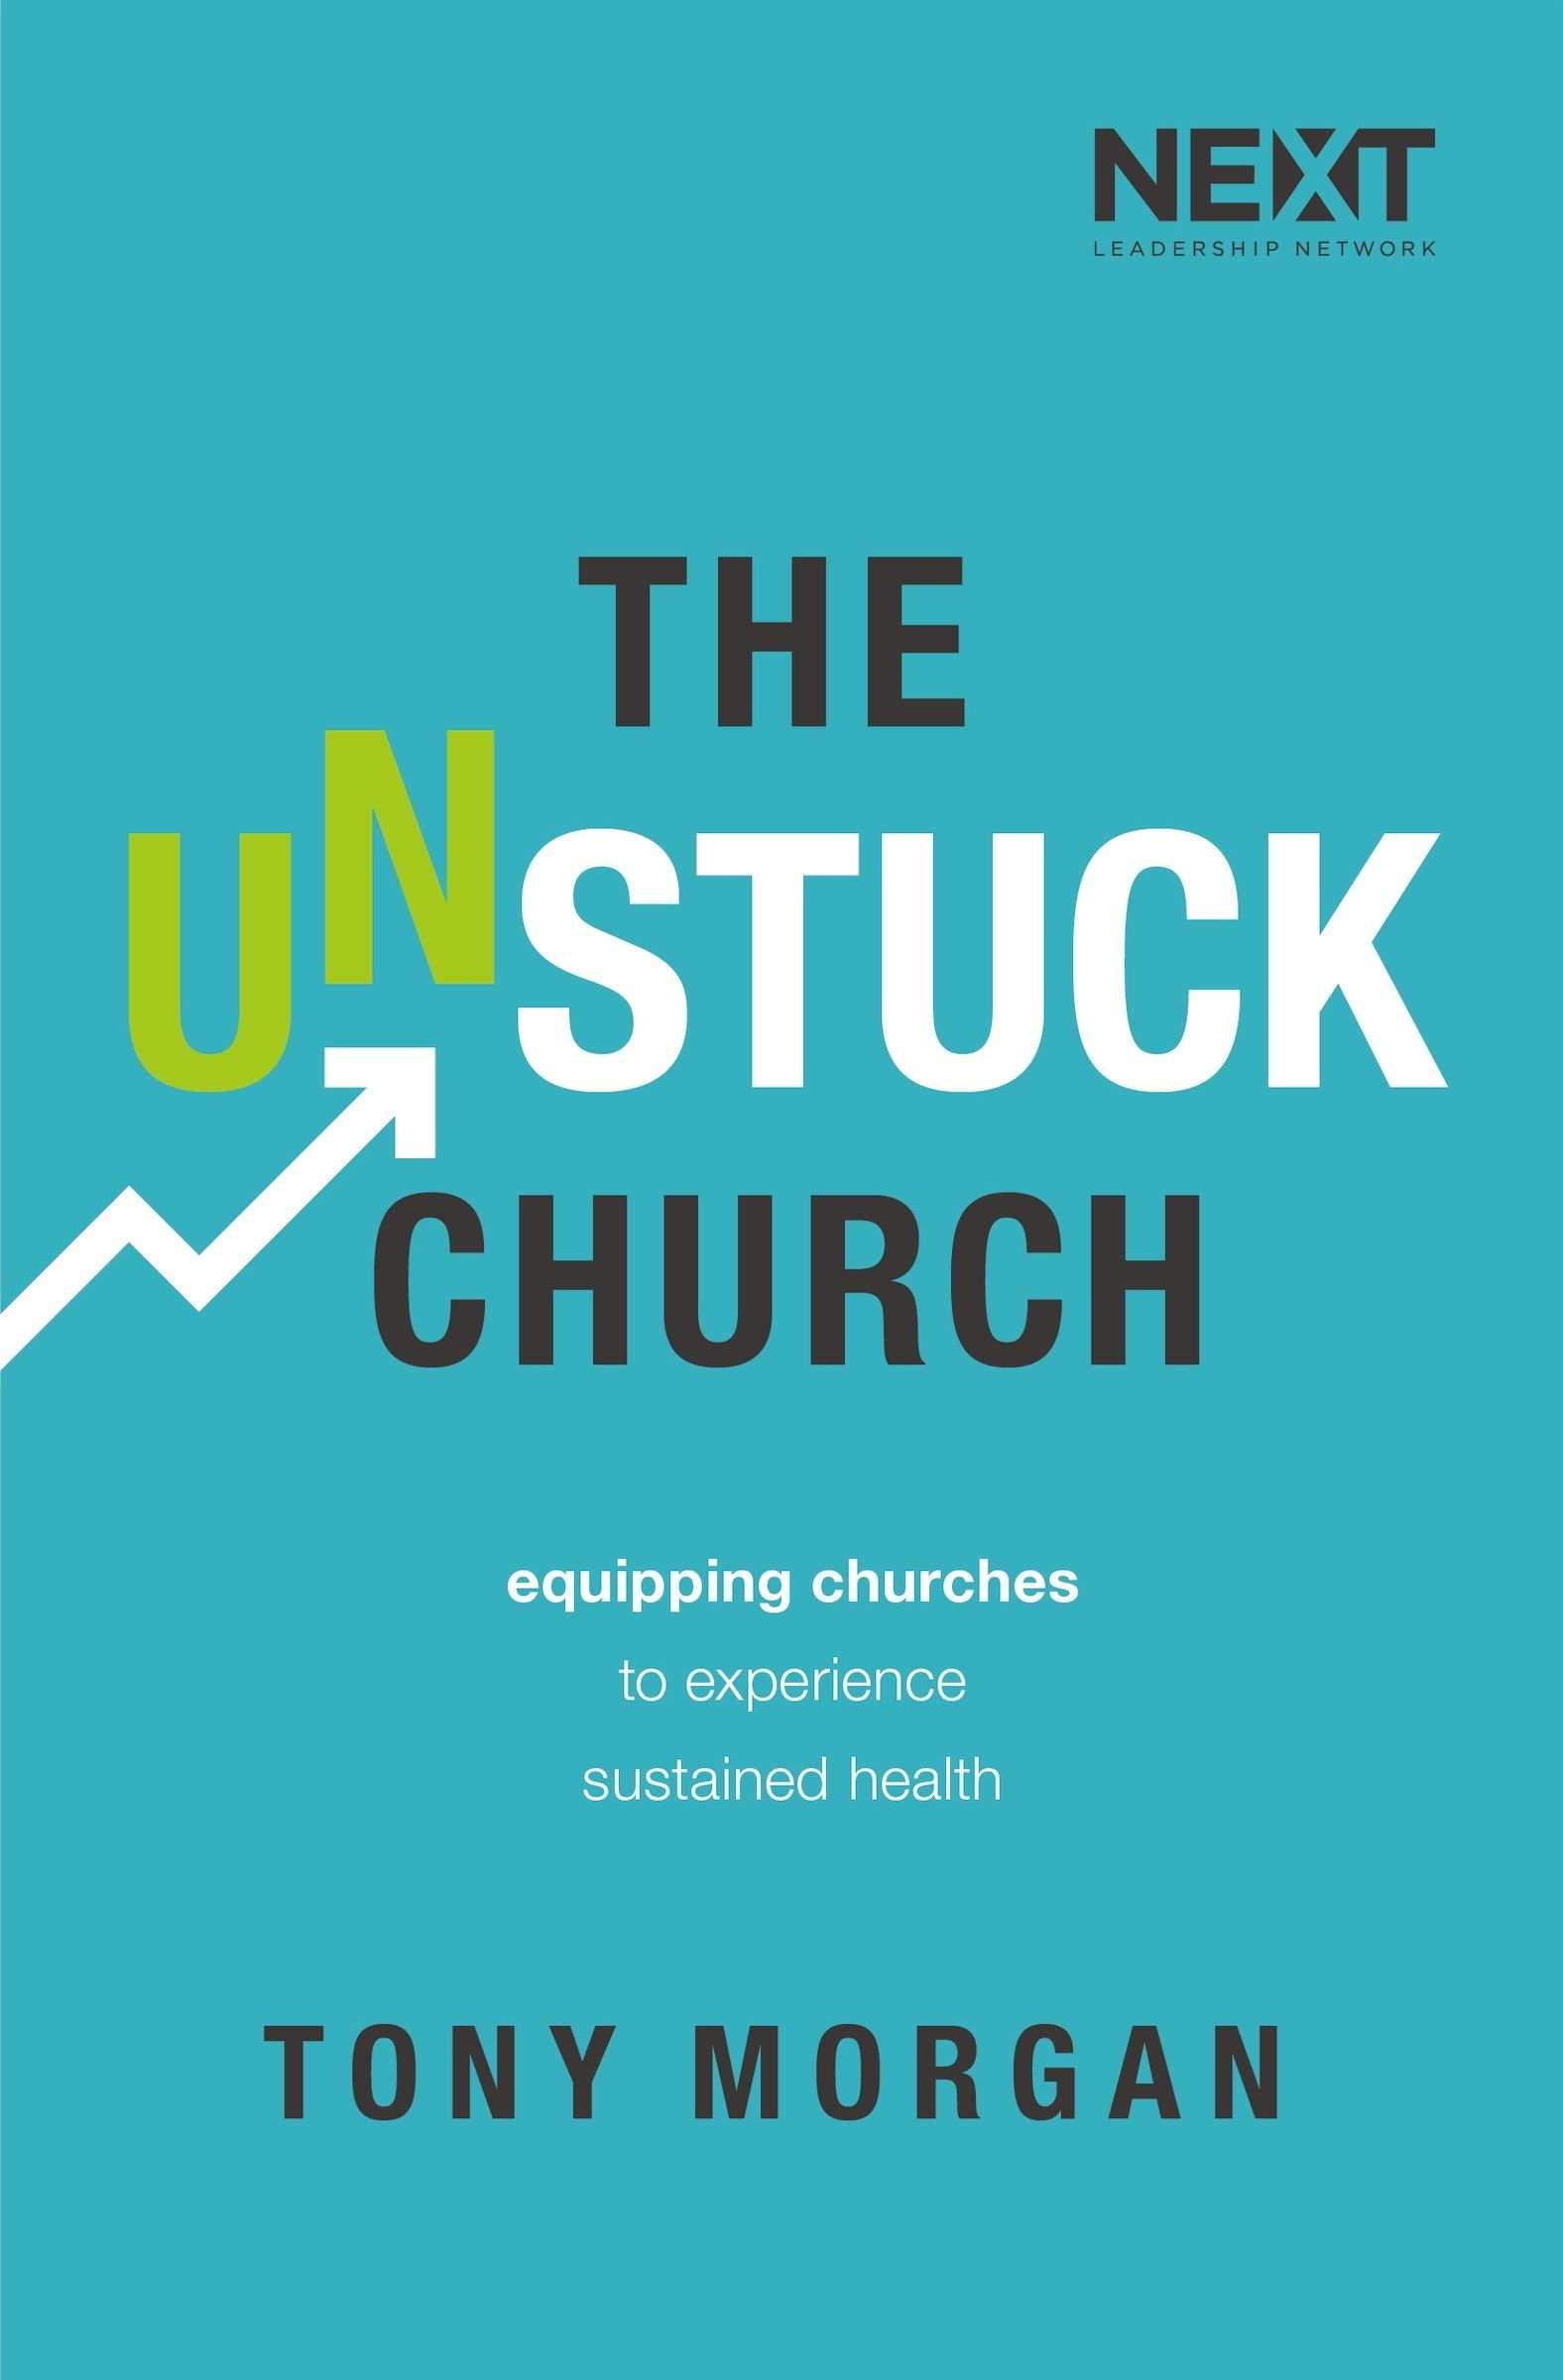 The Unstuck Church Tony Morgan